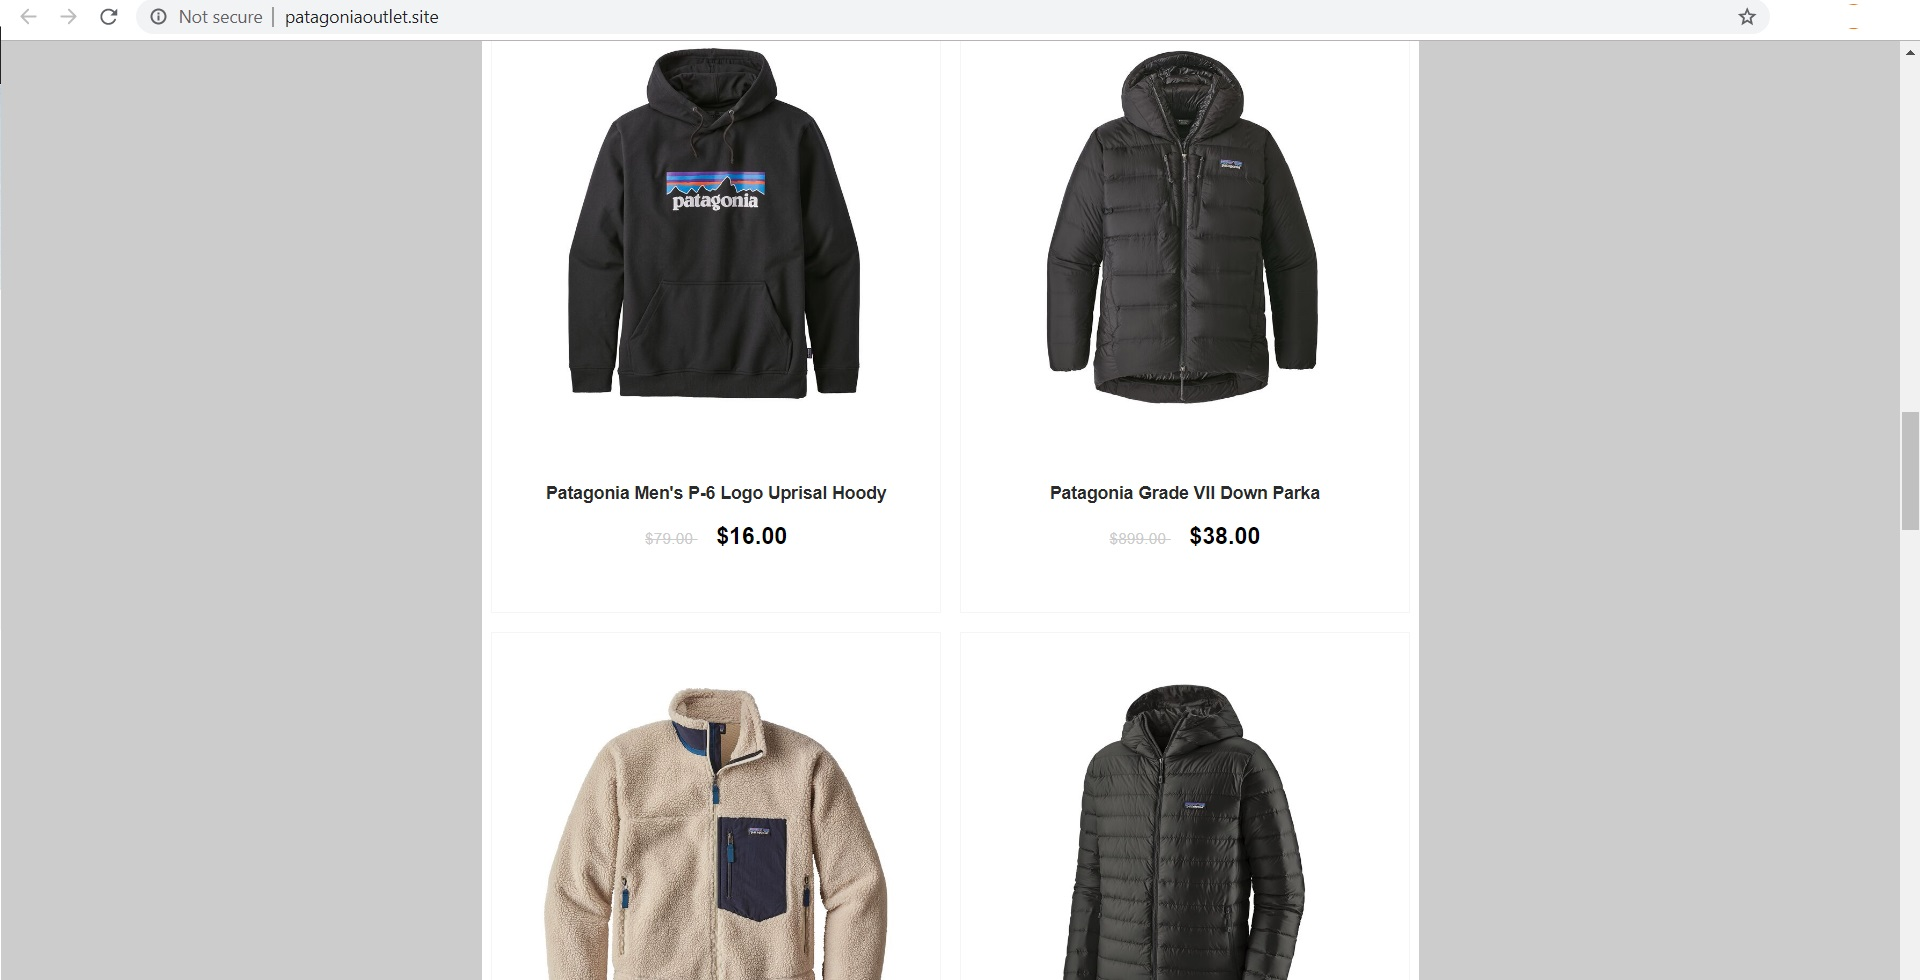 Patagonia Outlet Site Scam - patagoniaoutlet.site